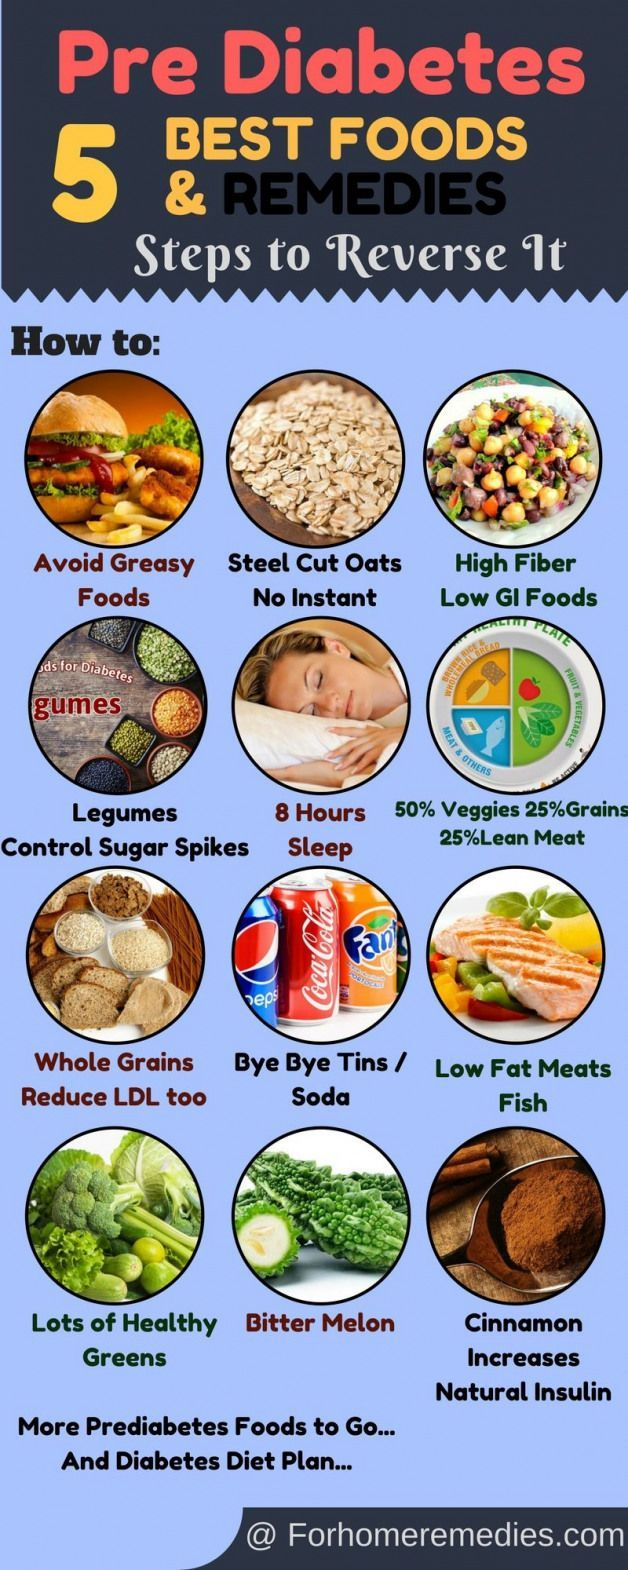 Best foods and diet plan for pre-diabetes and diabetes home remedies: Check for ...